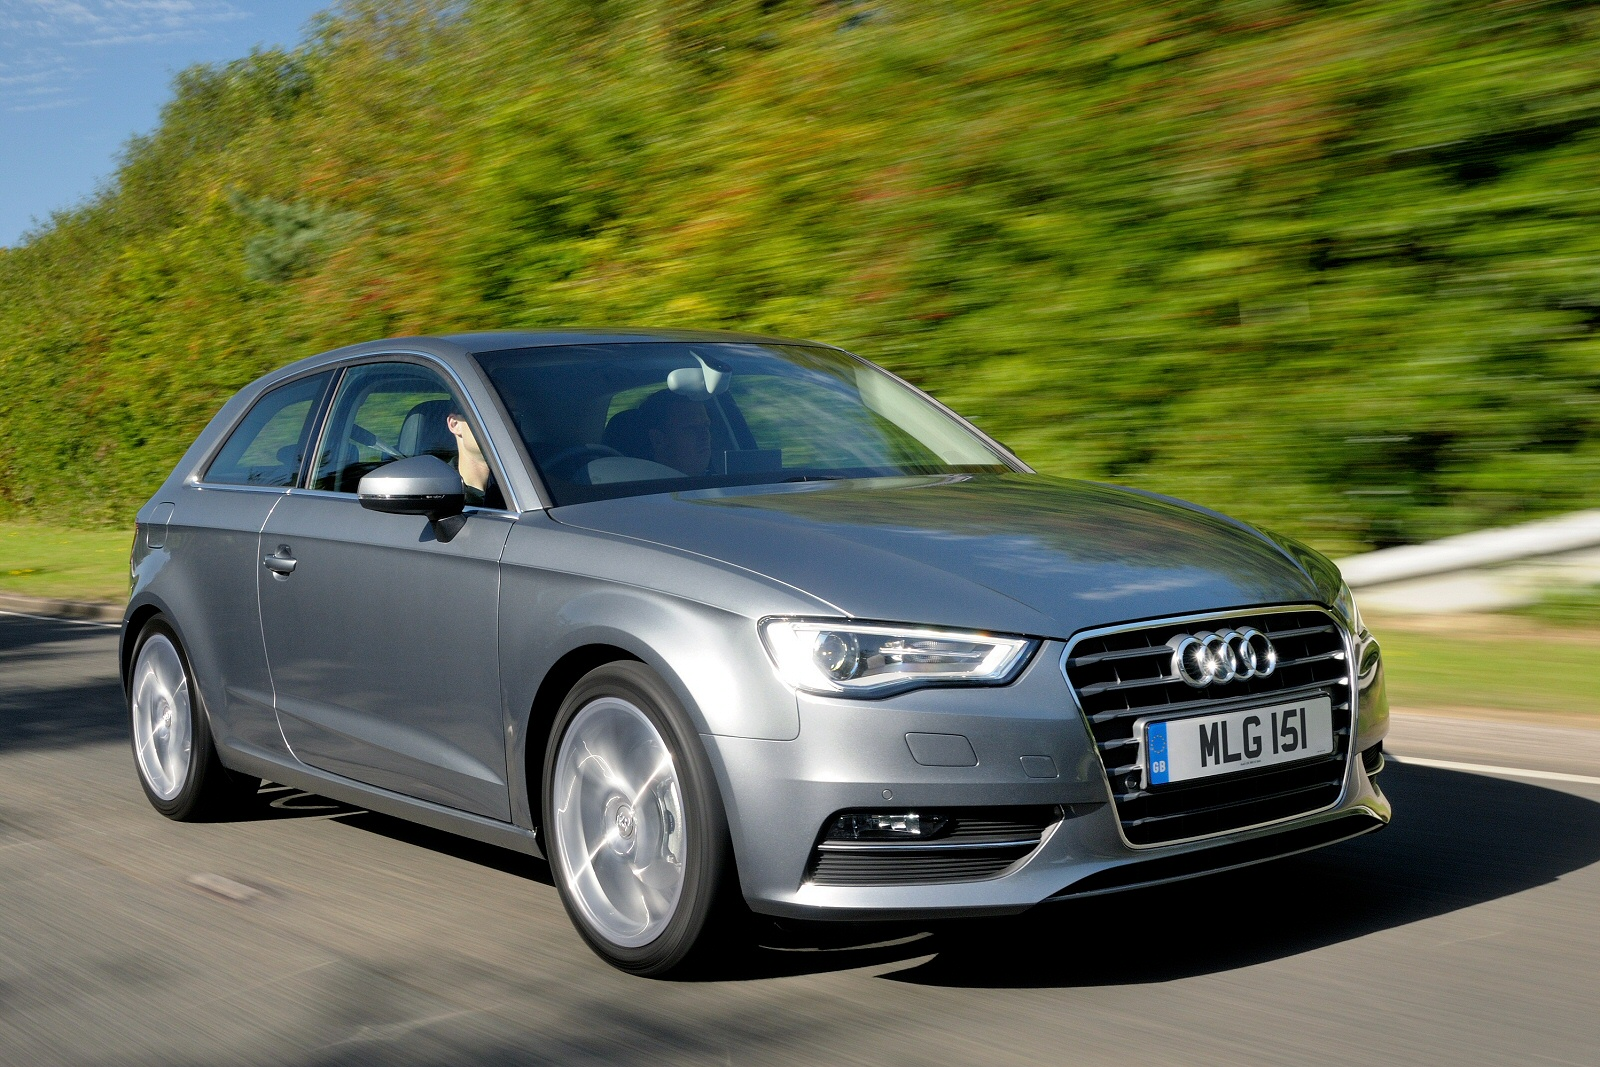 new audi a3 1 6 tdi 116 sport 2dr diesel cabriolet for sale hereford audi. Black Bedroom Furniture Sets. Home Design Ideas